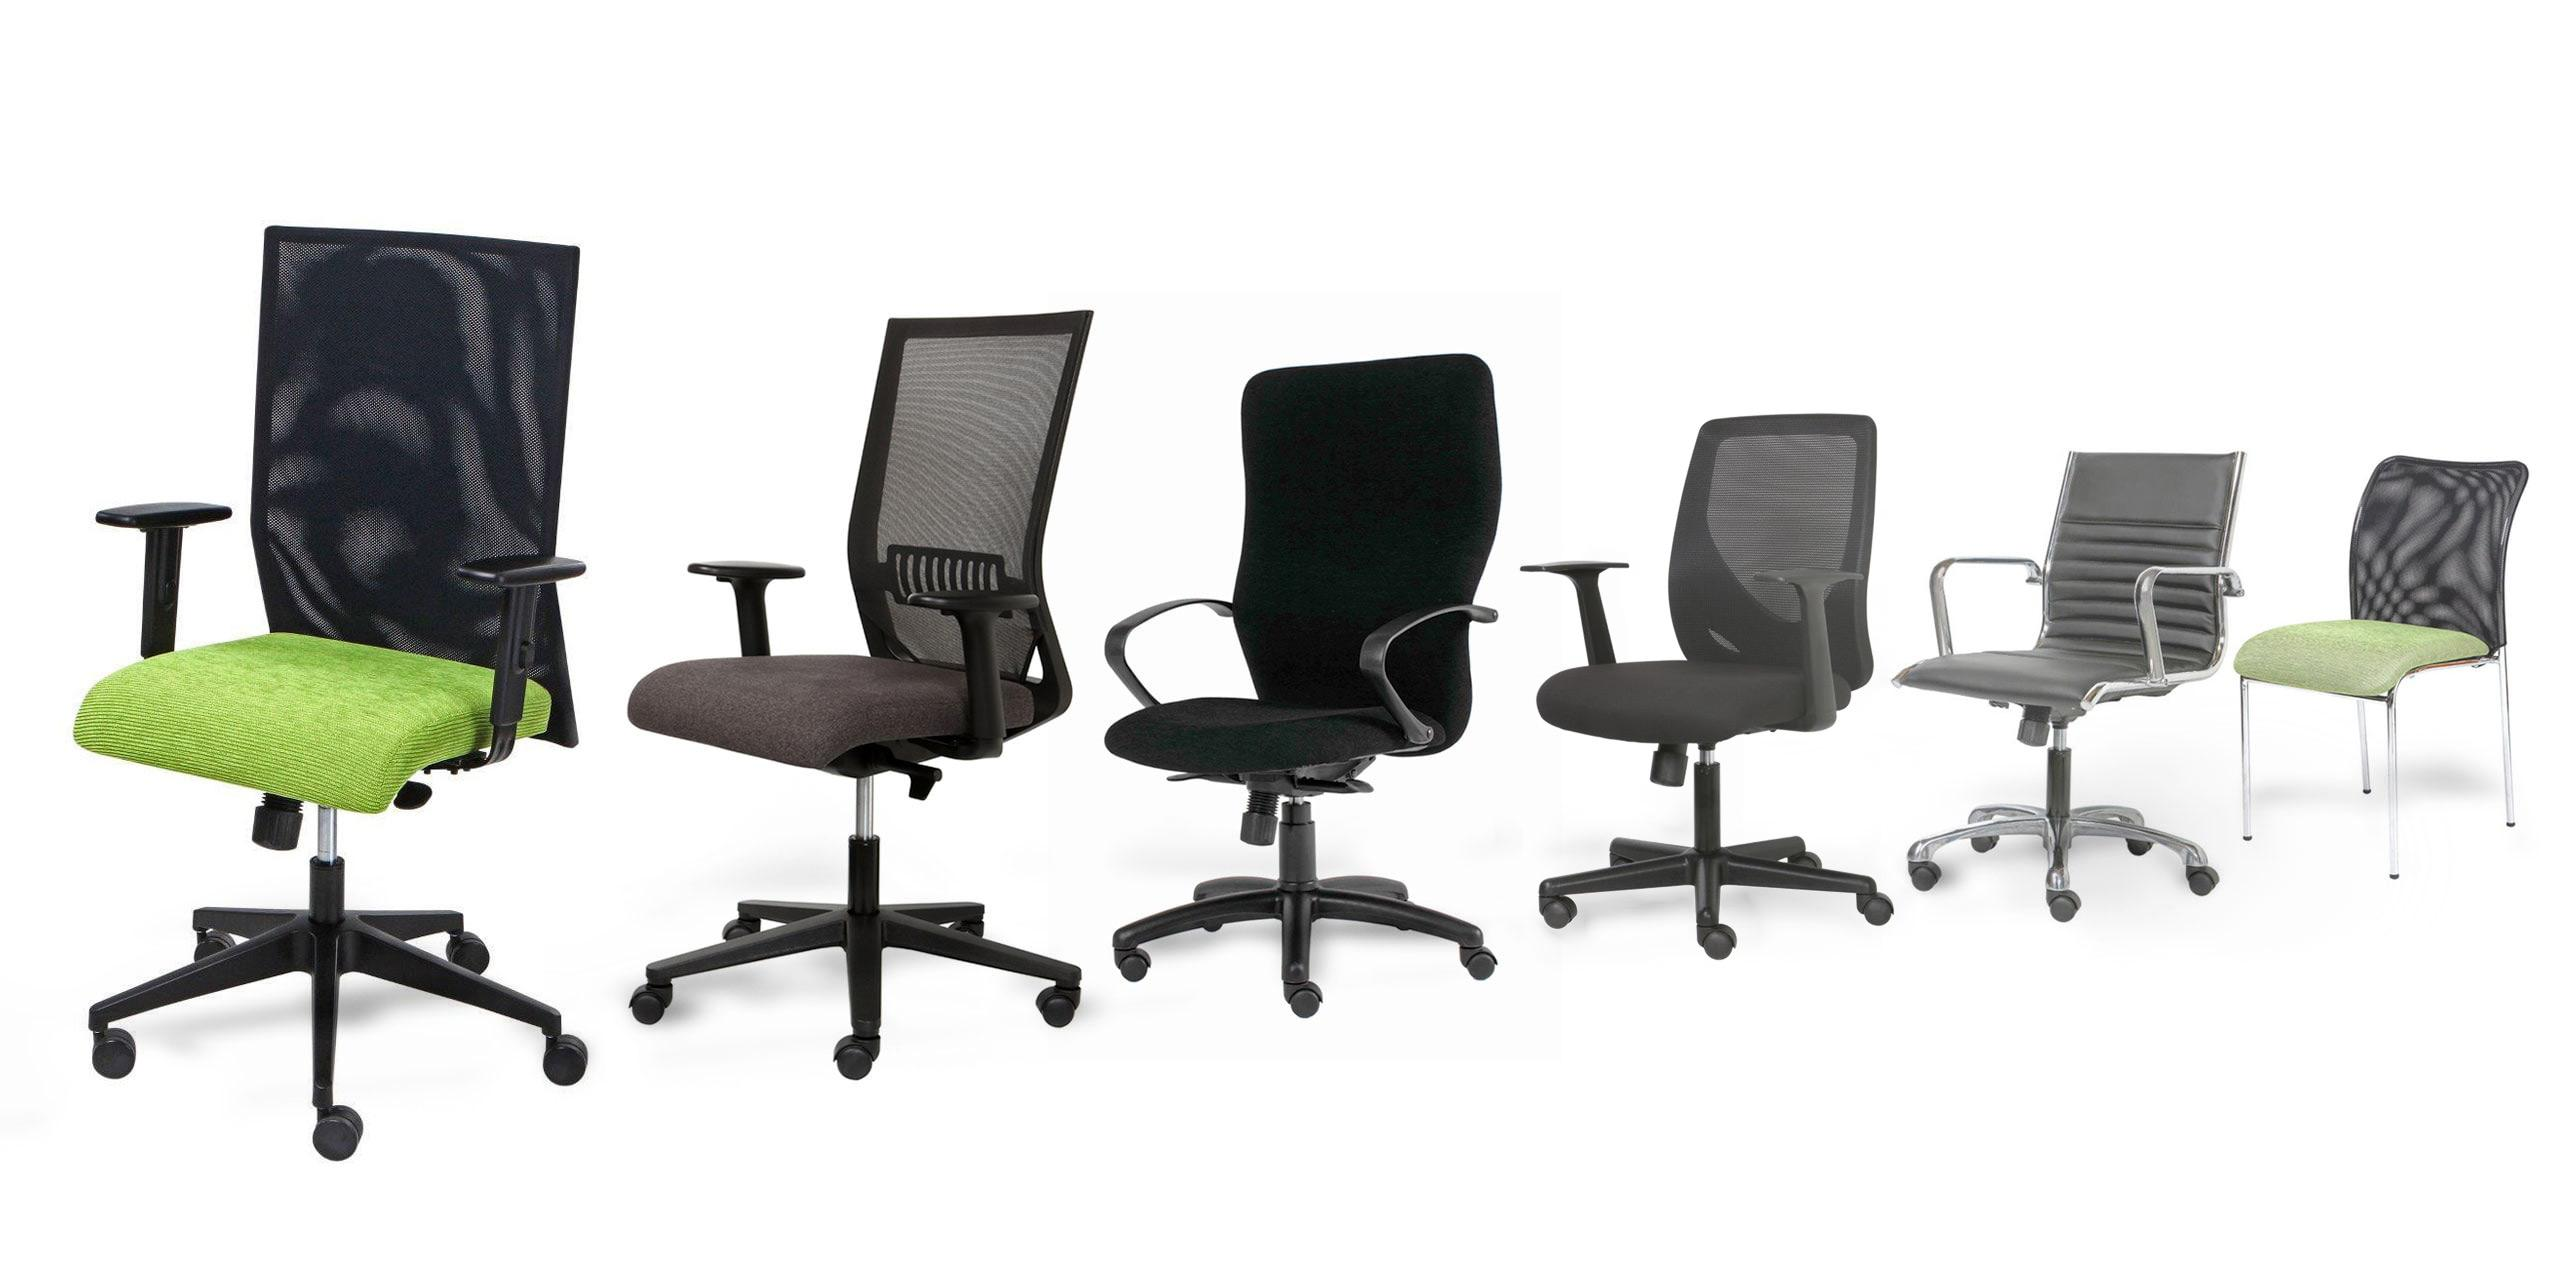 K-mark chairs